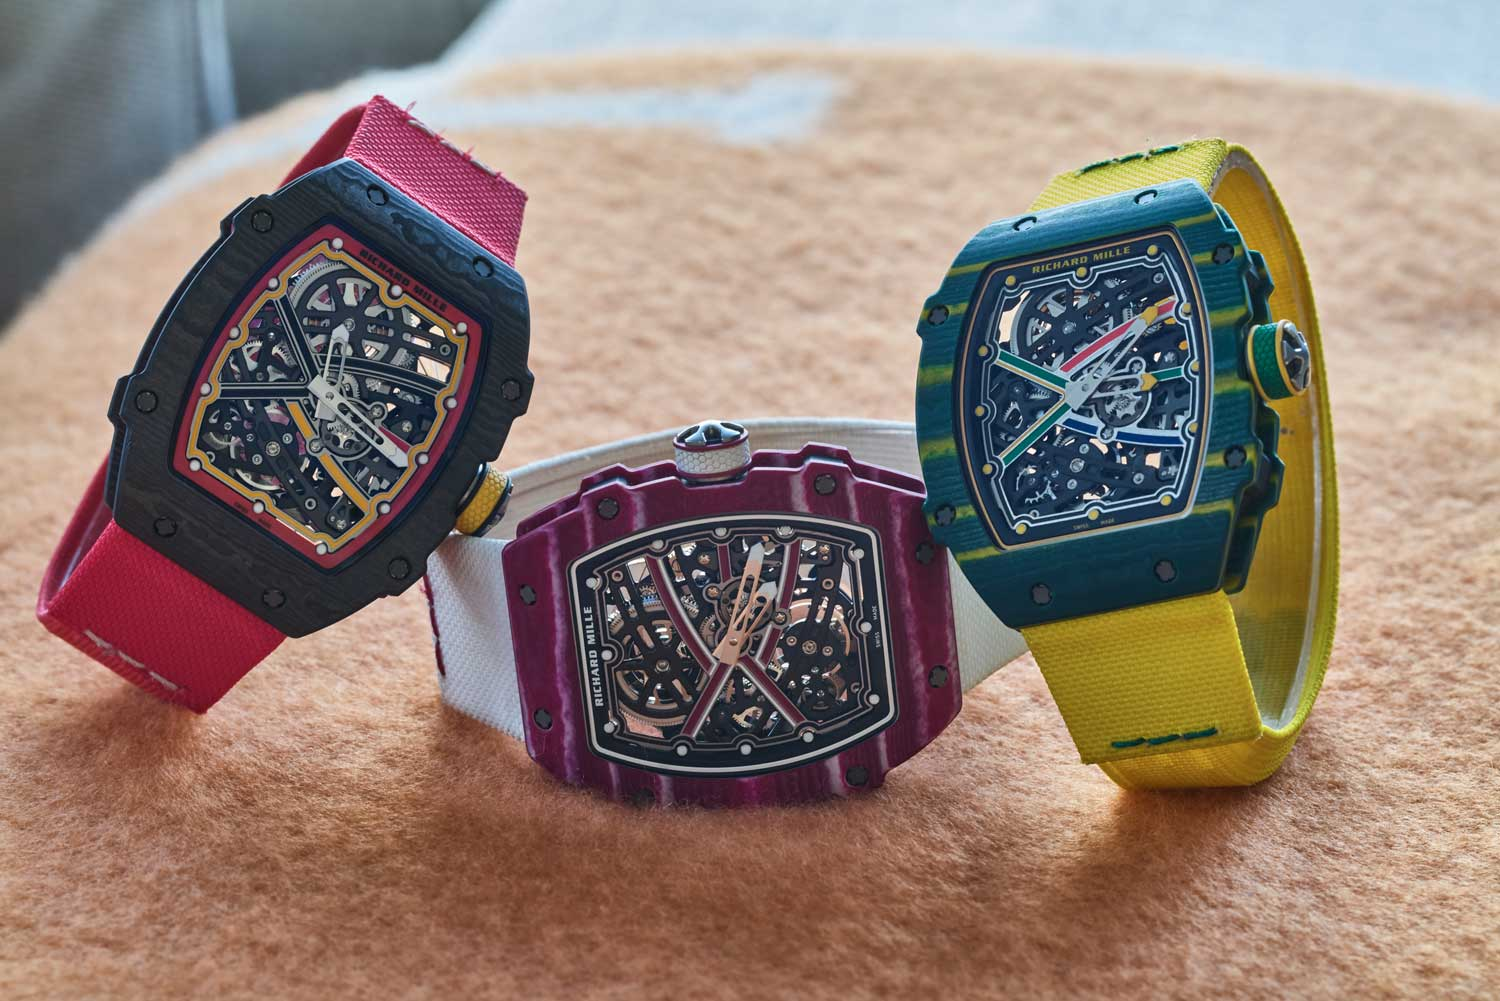 @santa_laura's collection of Richard Mille watches includes the RM 67-02 in three flavours (©Revolution)